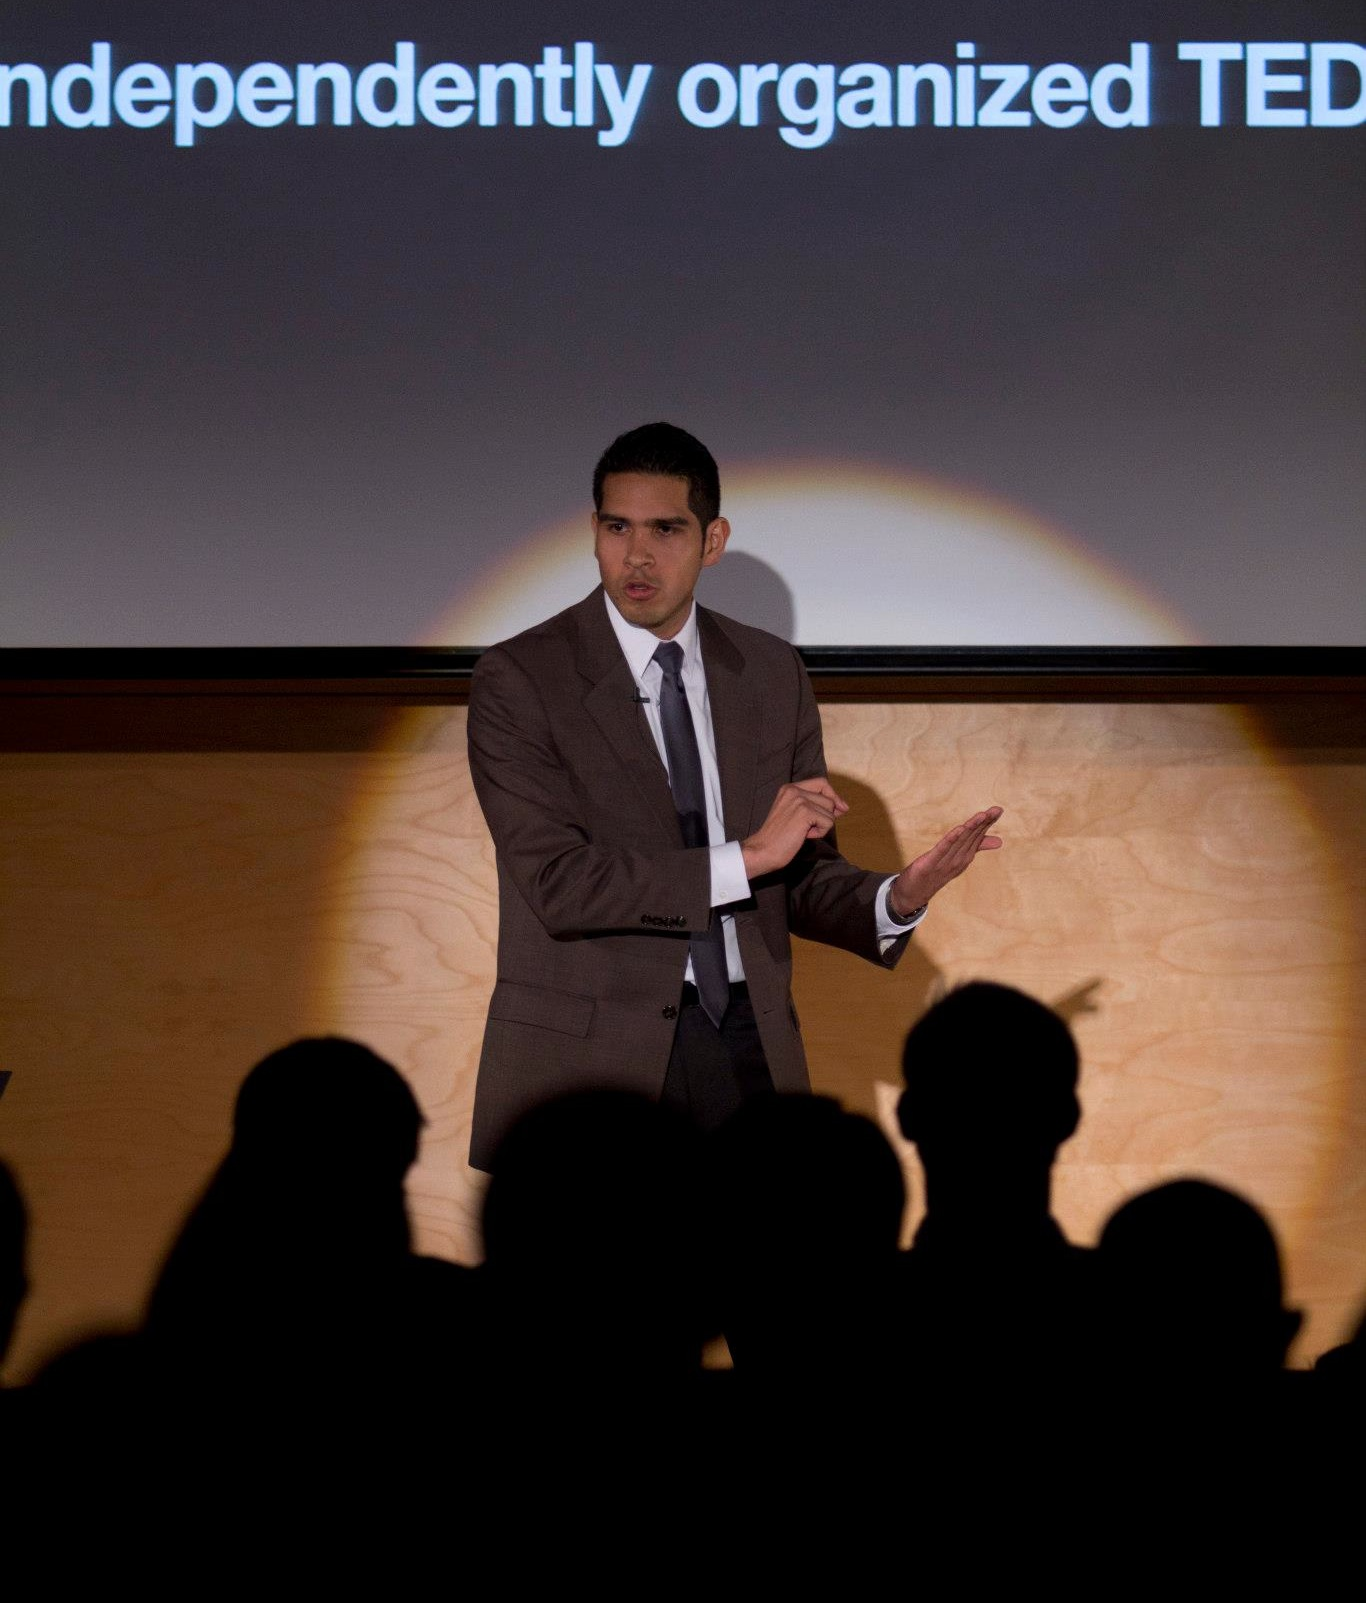 Luis speaking about the Power of Possibility at the 2013 TEDx UofW: Elements of Transition.